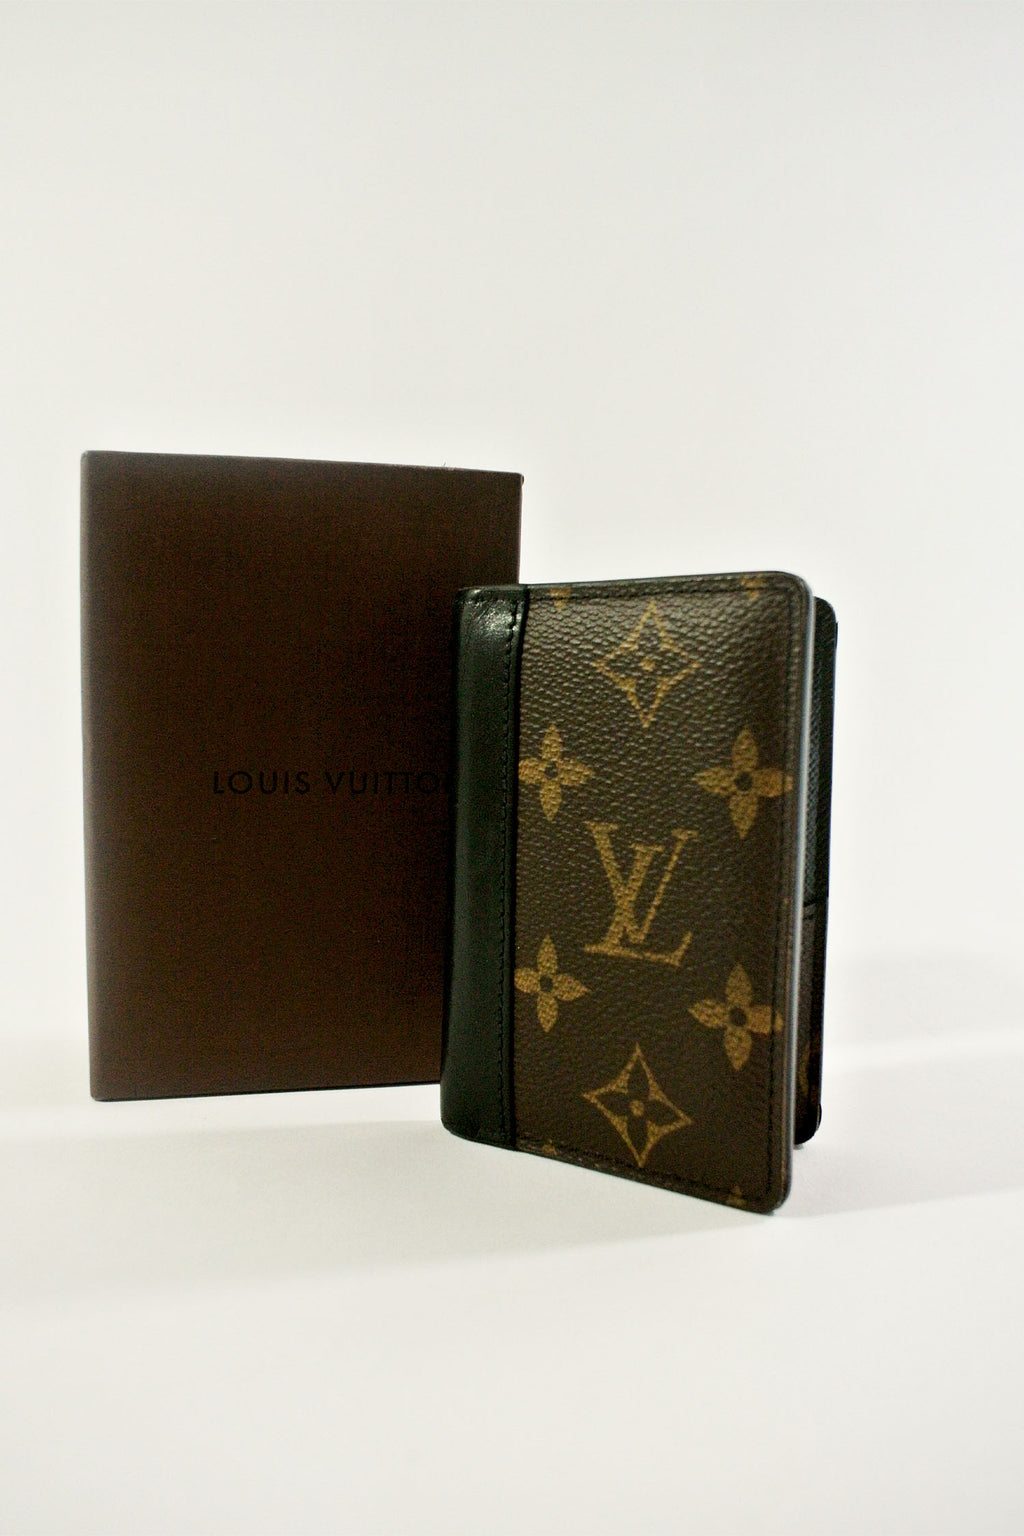 Louis Vuitton Monogram Macassar Pocket Organizer